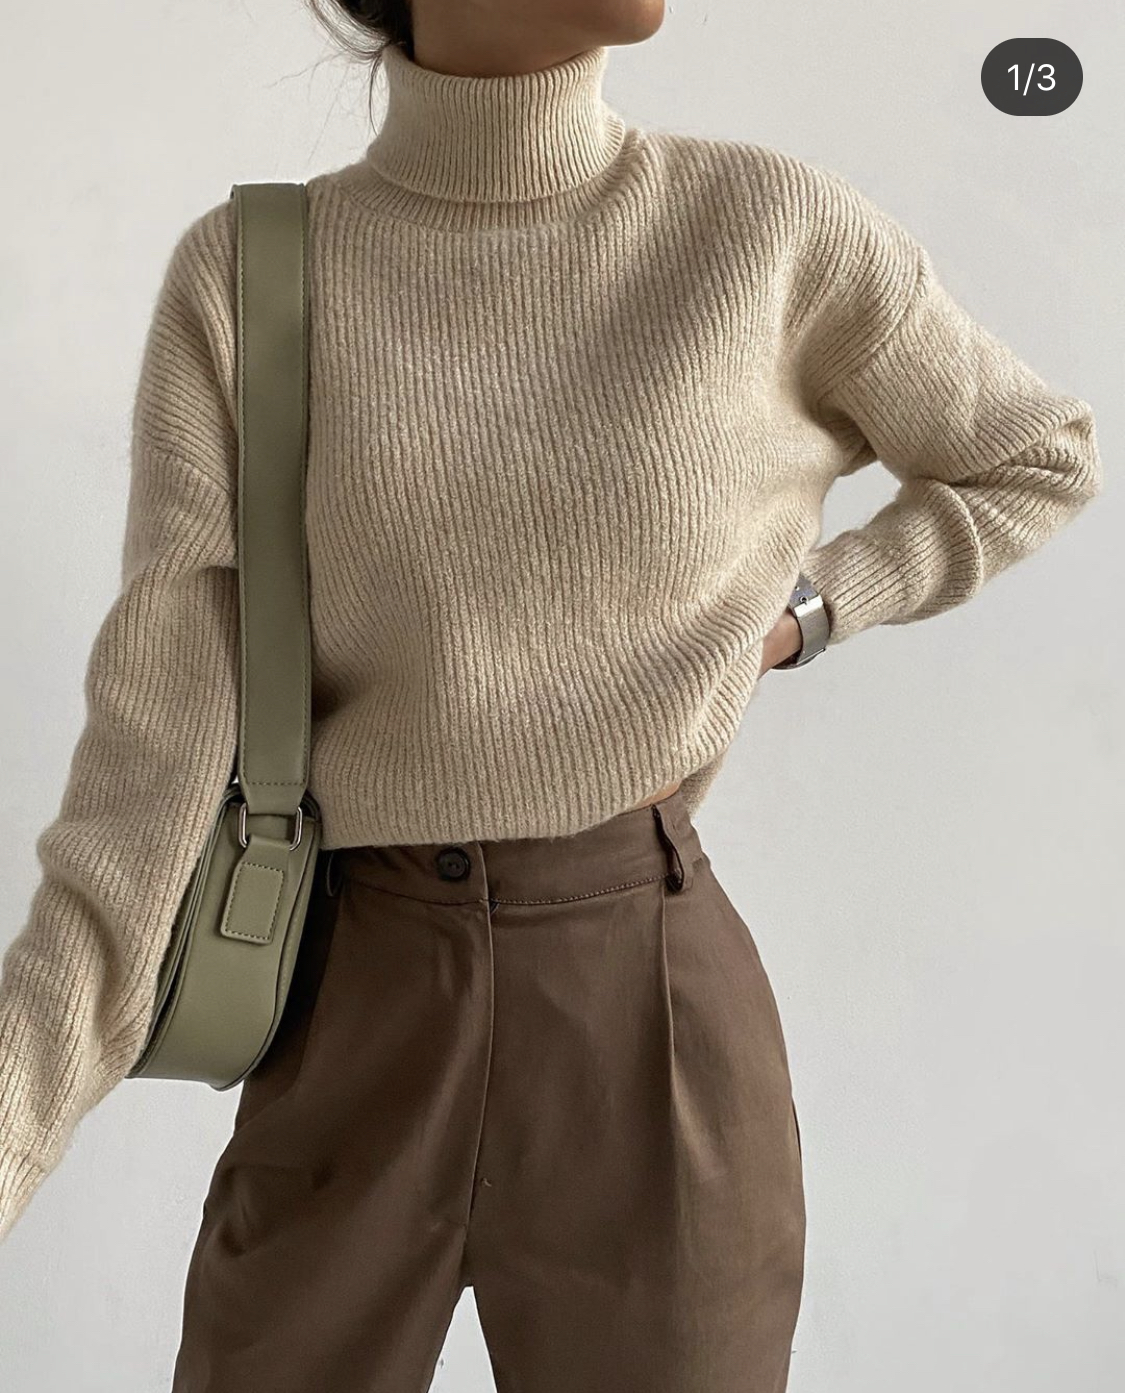 <p>Women&#39;s sweaters, cardigans, hoodies, sweatshirts, shirts, T-shirts, turtlenecks, knitted dresses, jumpers, mom jeans, boyfriend jeans, straight cut jeans, suits with joggers, tops, T-shirts, belts, shorts, chiffon dresses, summer dresses, trench coats, sheepskin coats, leather jackets, raincoats, bombers, jackets WANTED. Colors for all clothes: beige, brown, blue, white, black, sand, coffee, light green. Approximate volumes - goods worth within 800 USD</p>  <p>&nbsp;</p>  <p><em>(translated from russian)</em></p>